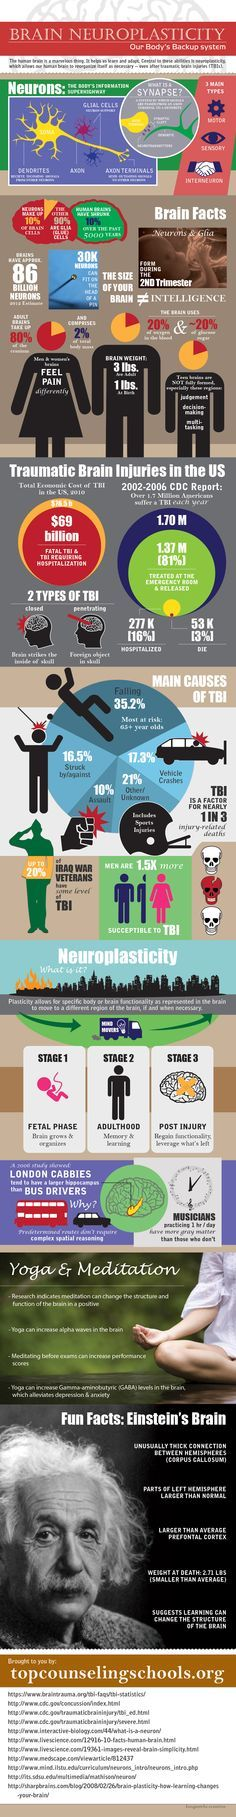 Brain Neuroplasticity  yoga good =  [INFOGRAPHIC] #brain #neuroplasticity